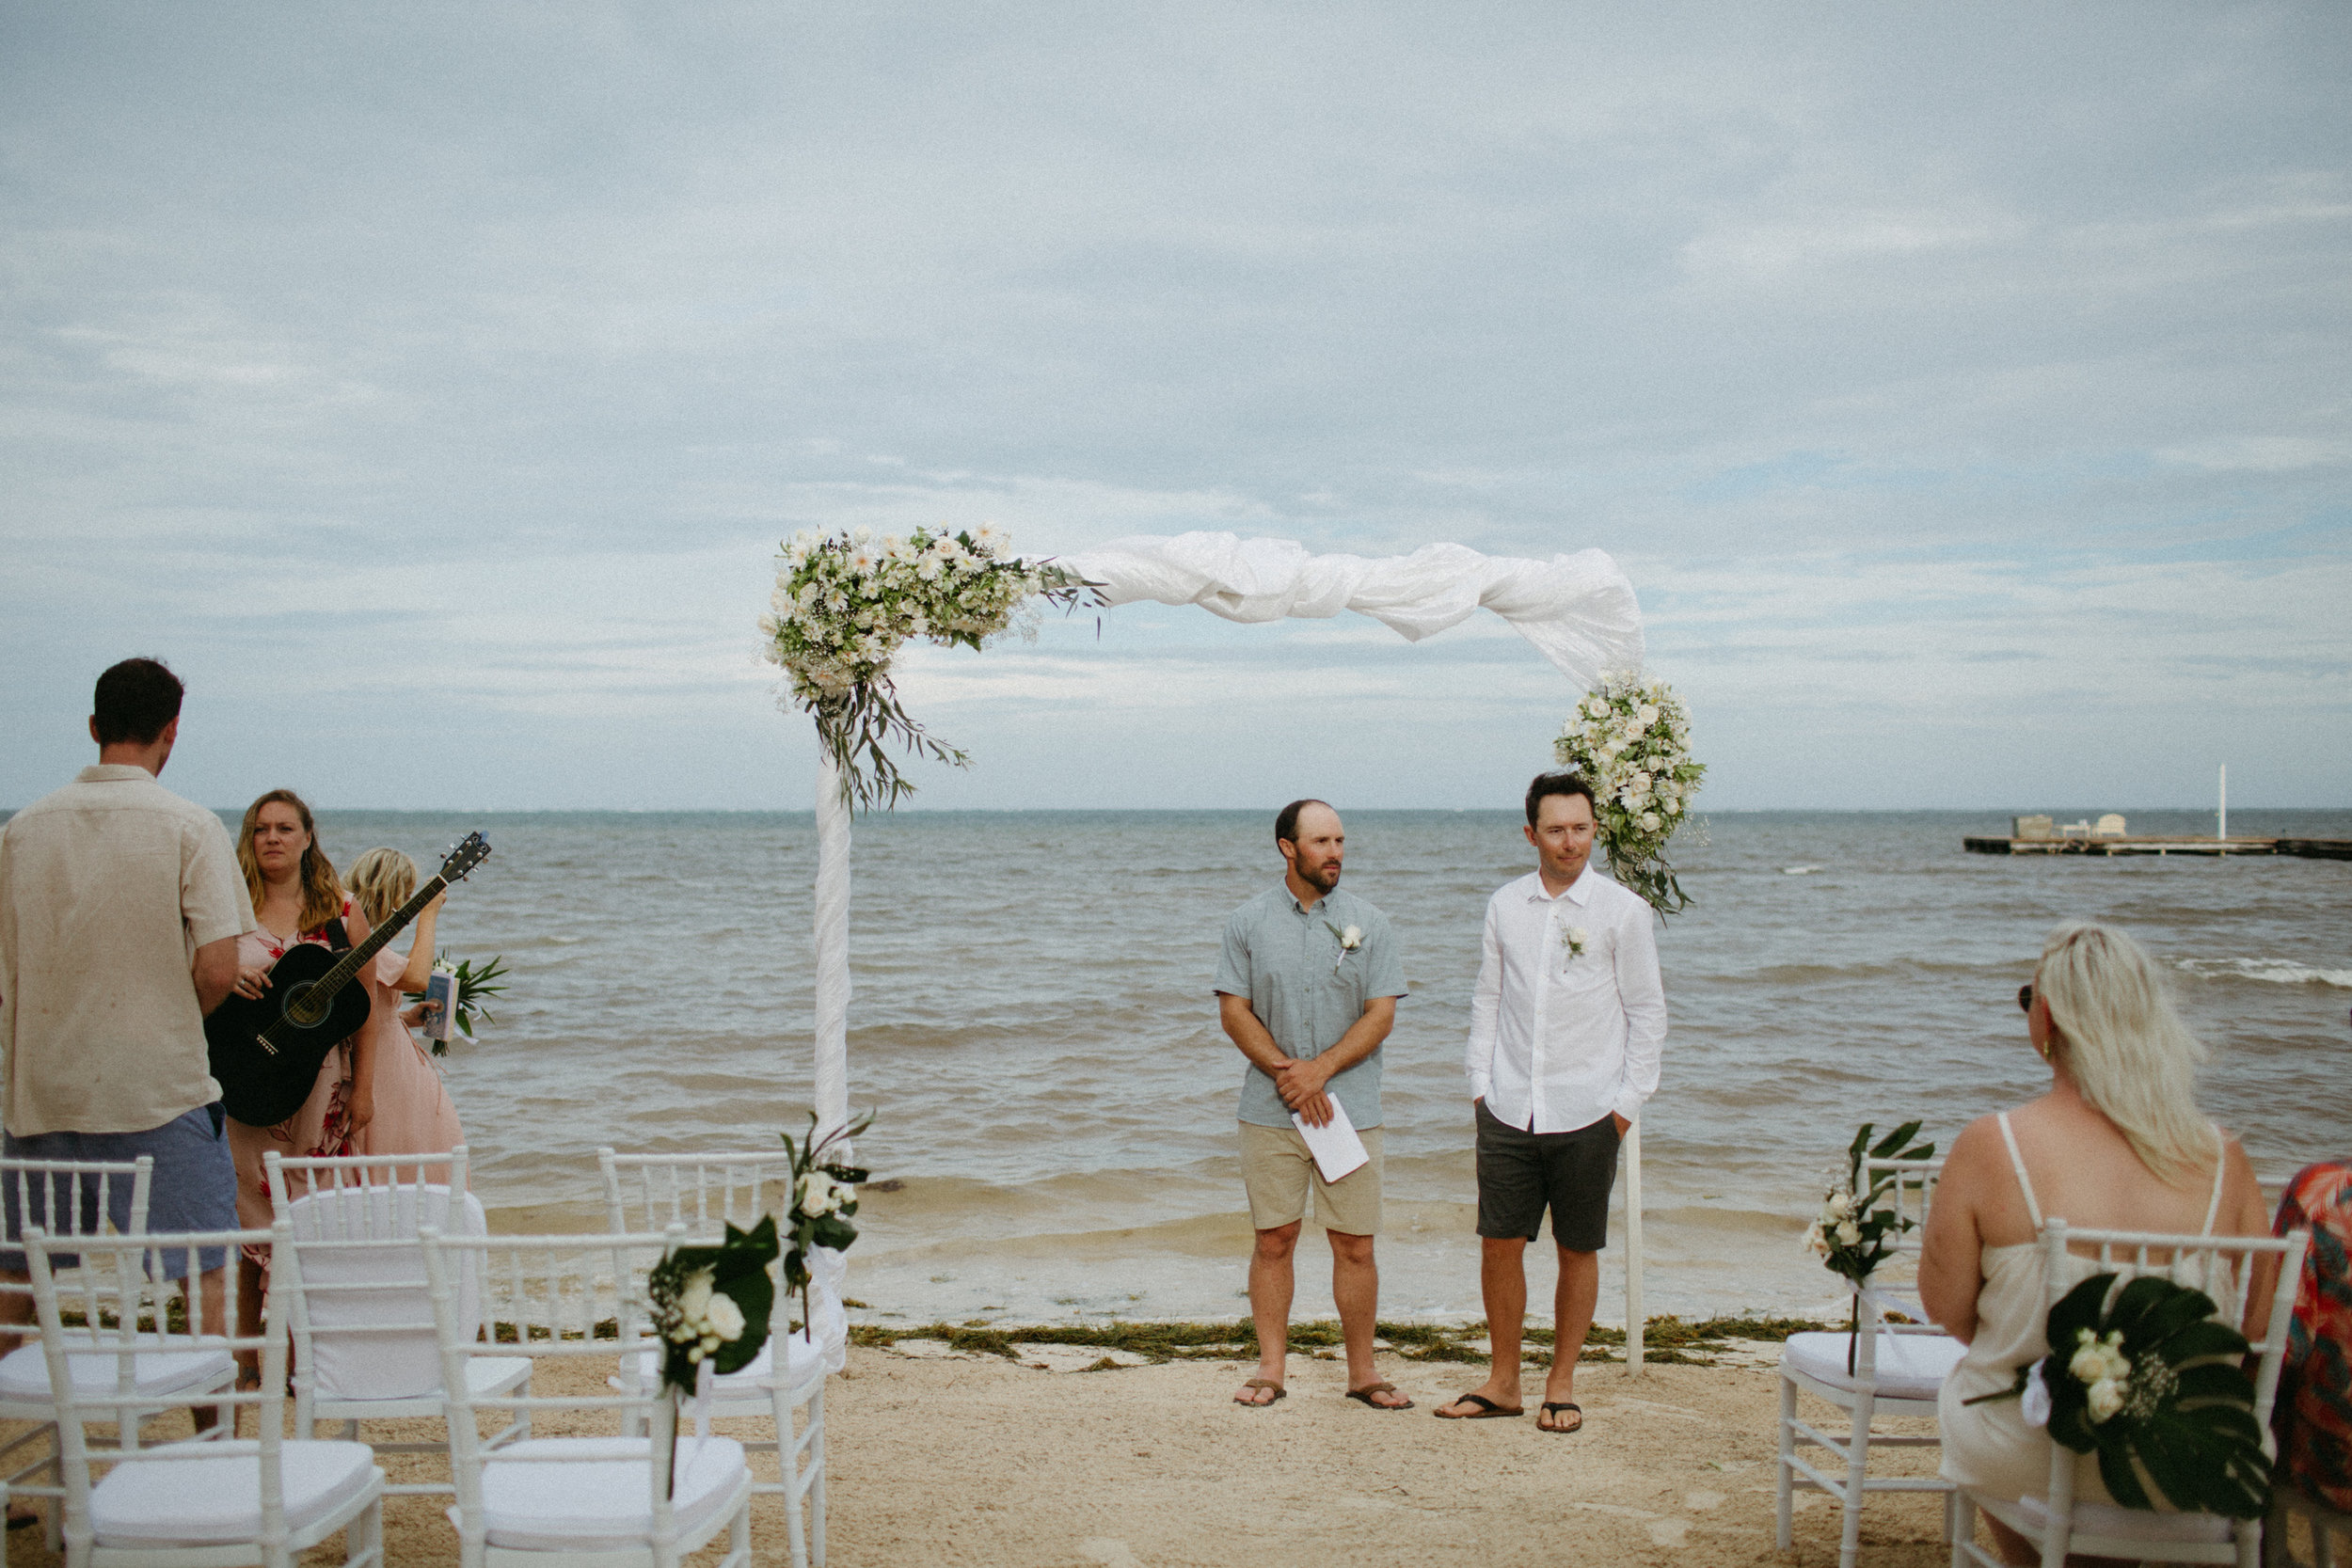 san-pescador-belize-wedding-christinemariephoto-j-k-82.jpg